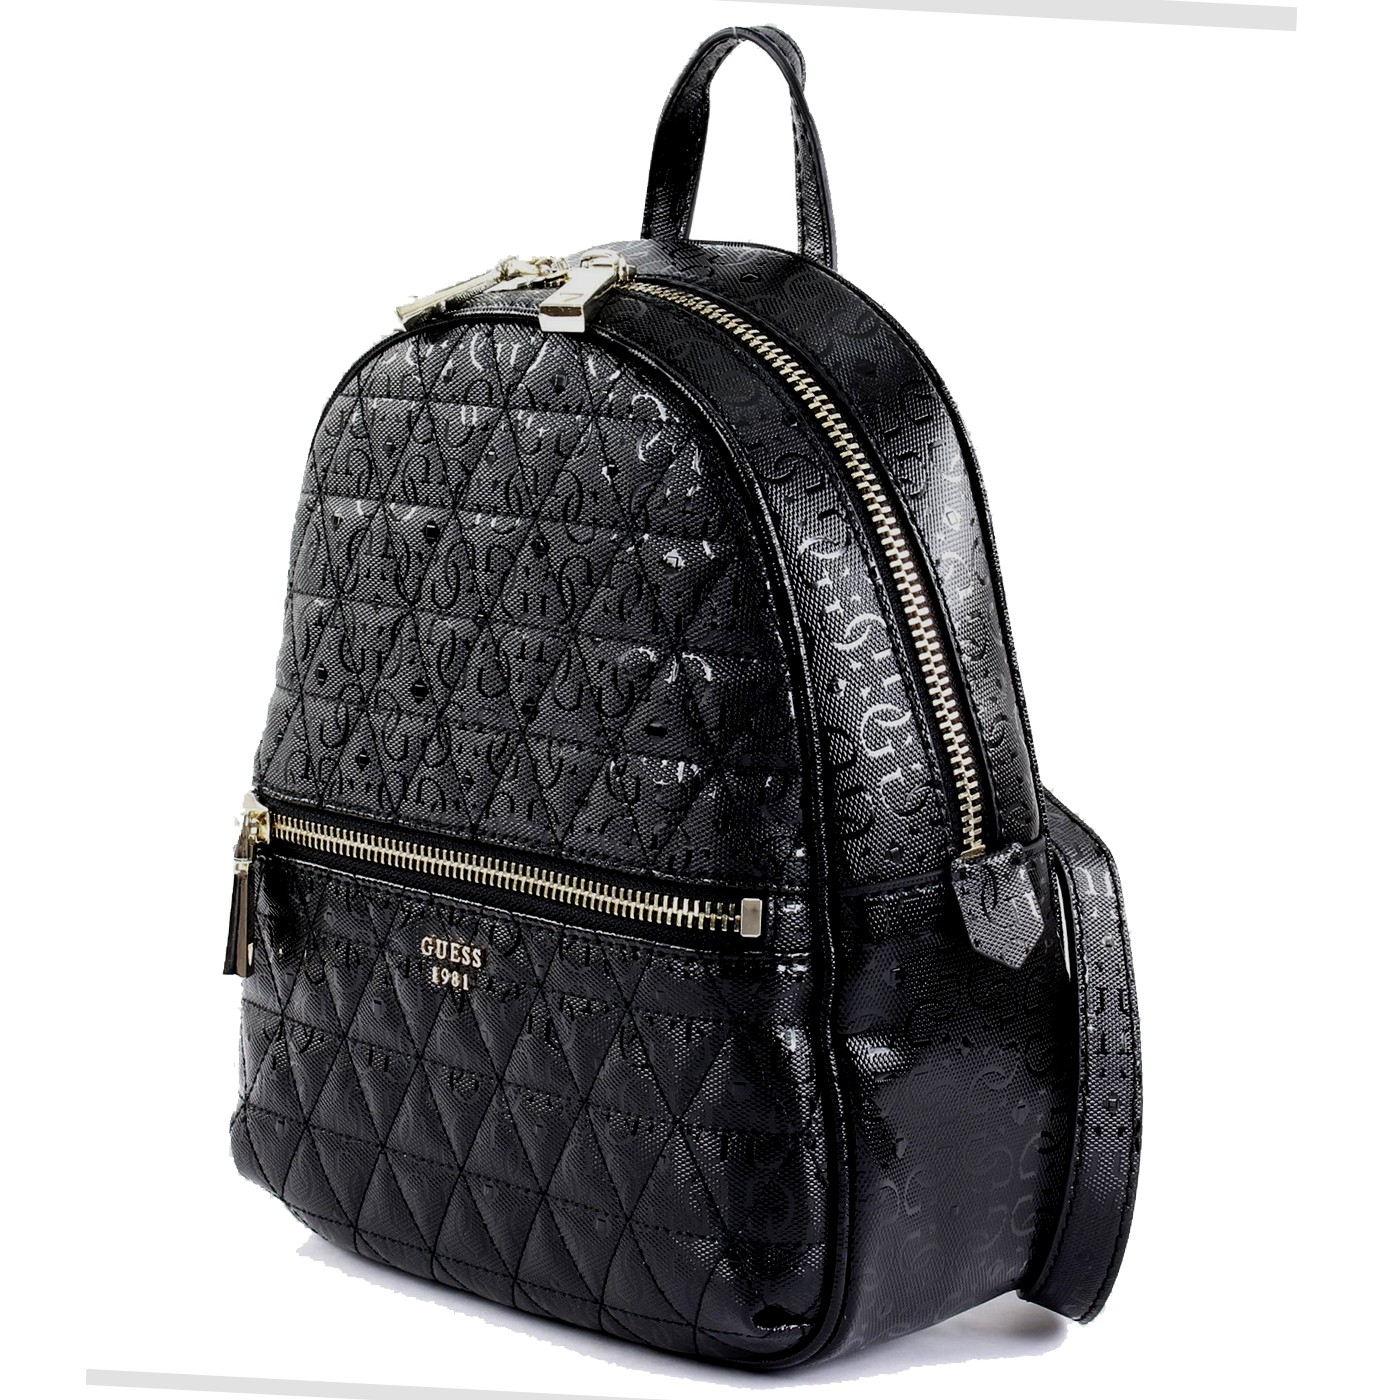 4242a0d174a GUESS TABBI Faux Leather backpack logoed glossy BLACK S S 2019 ...